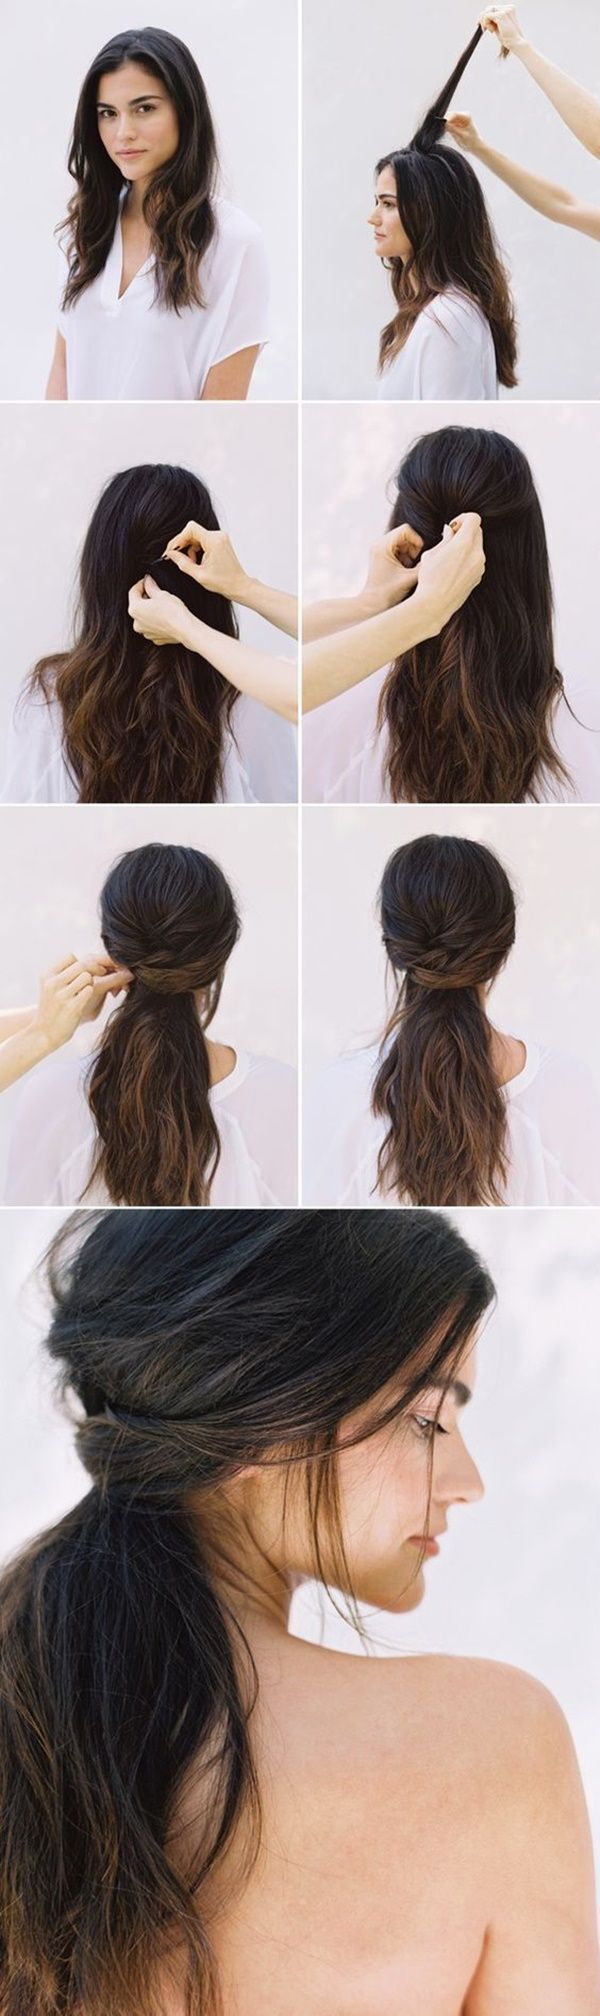 easy step by step hairstyles for girls pinterest hair style